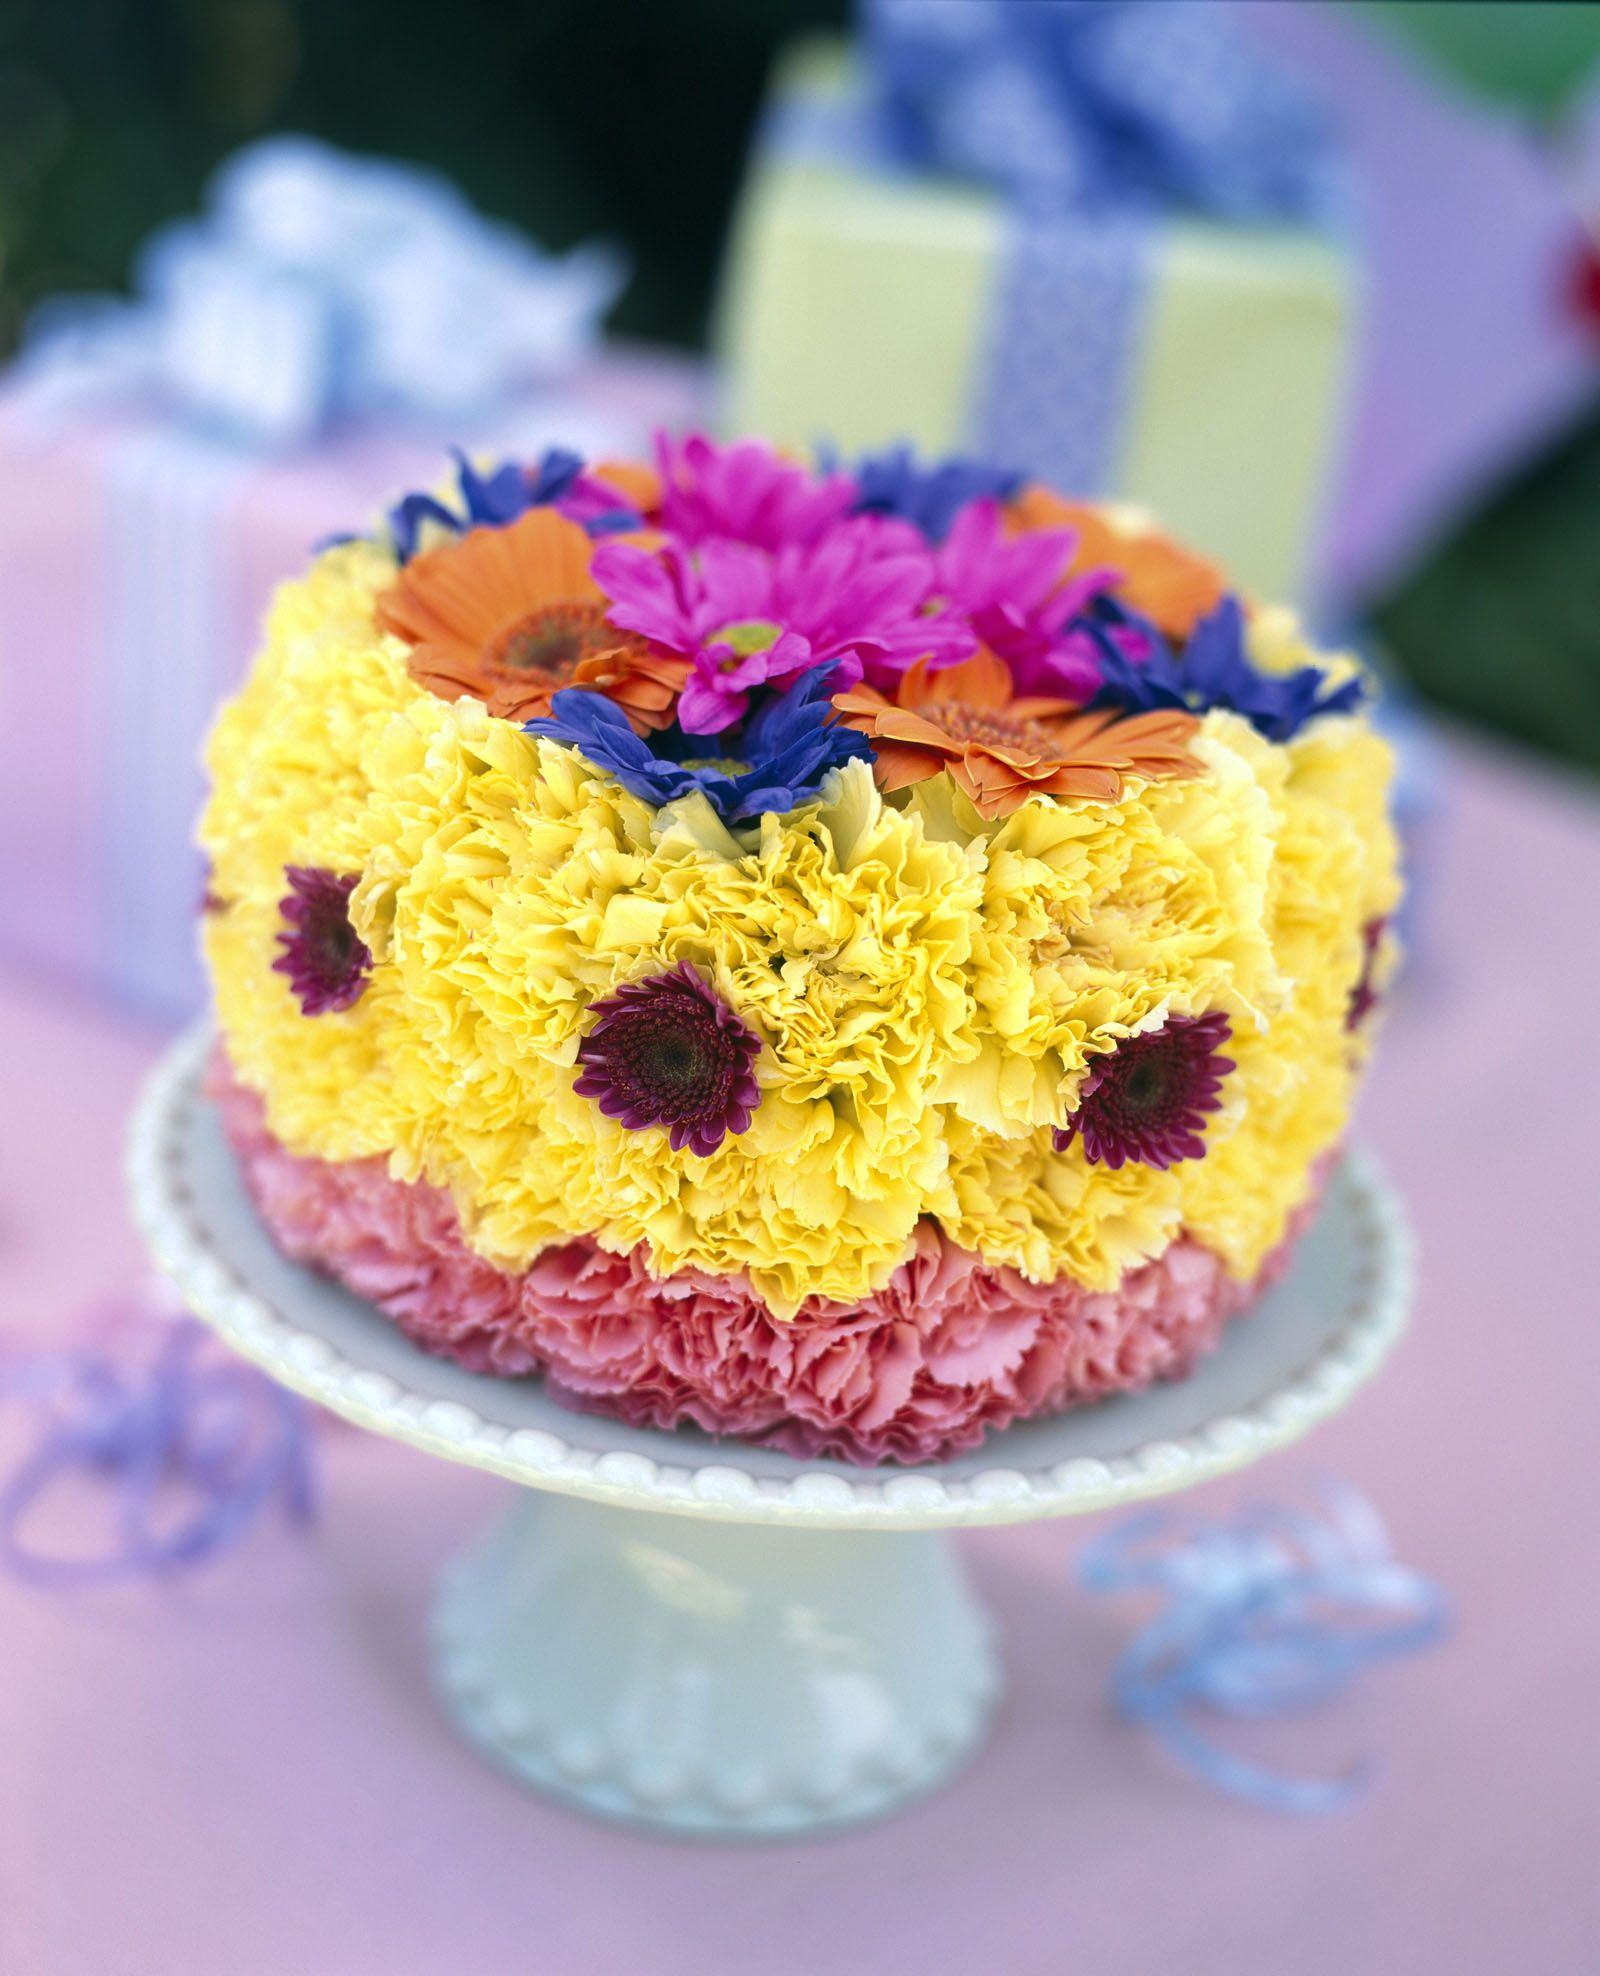 Happy birthday michelle i baked you a birthday cake flower happy birthday michelle i baked you a birthday cake flower arrangement izmirmasajfo